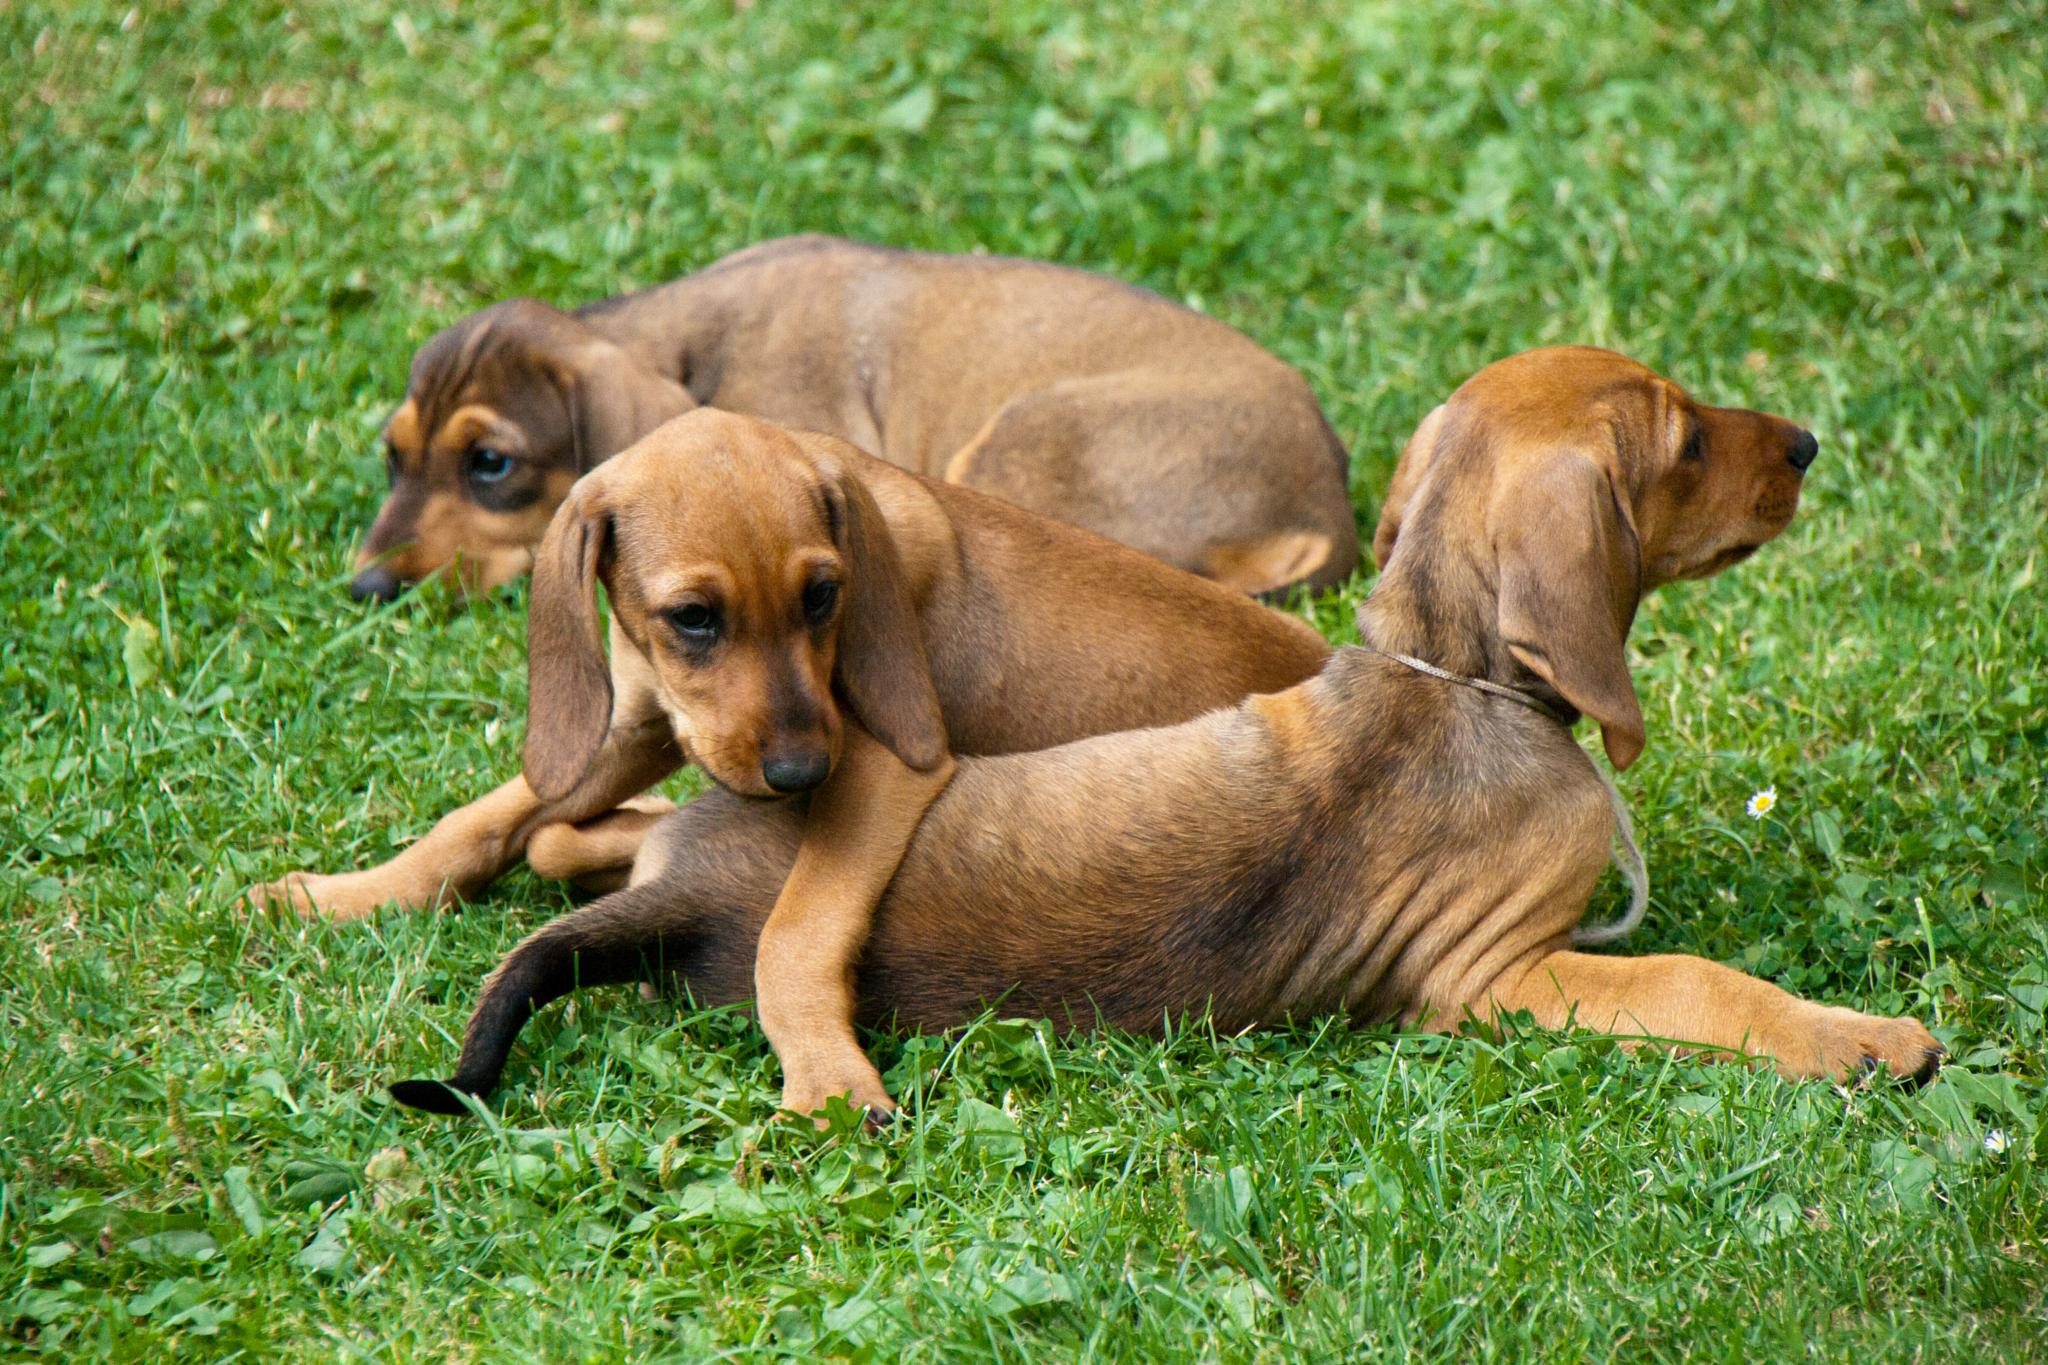 puppies by alessandronicolodi